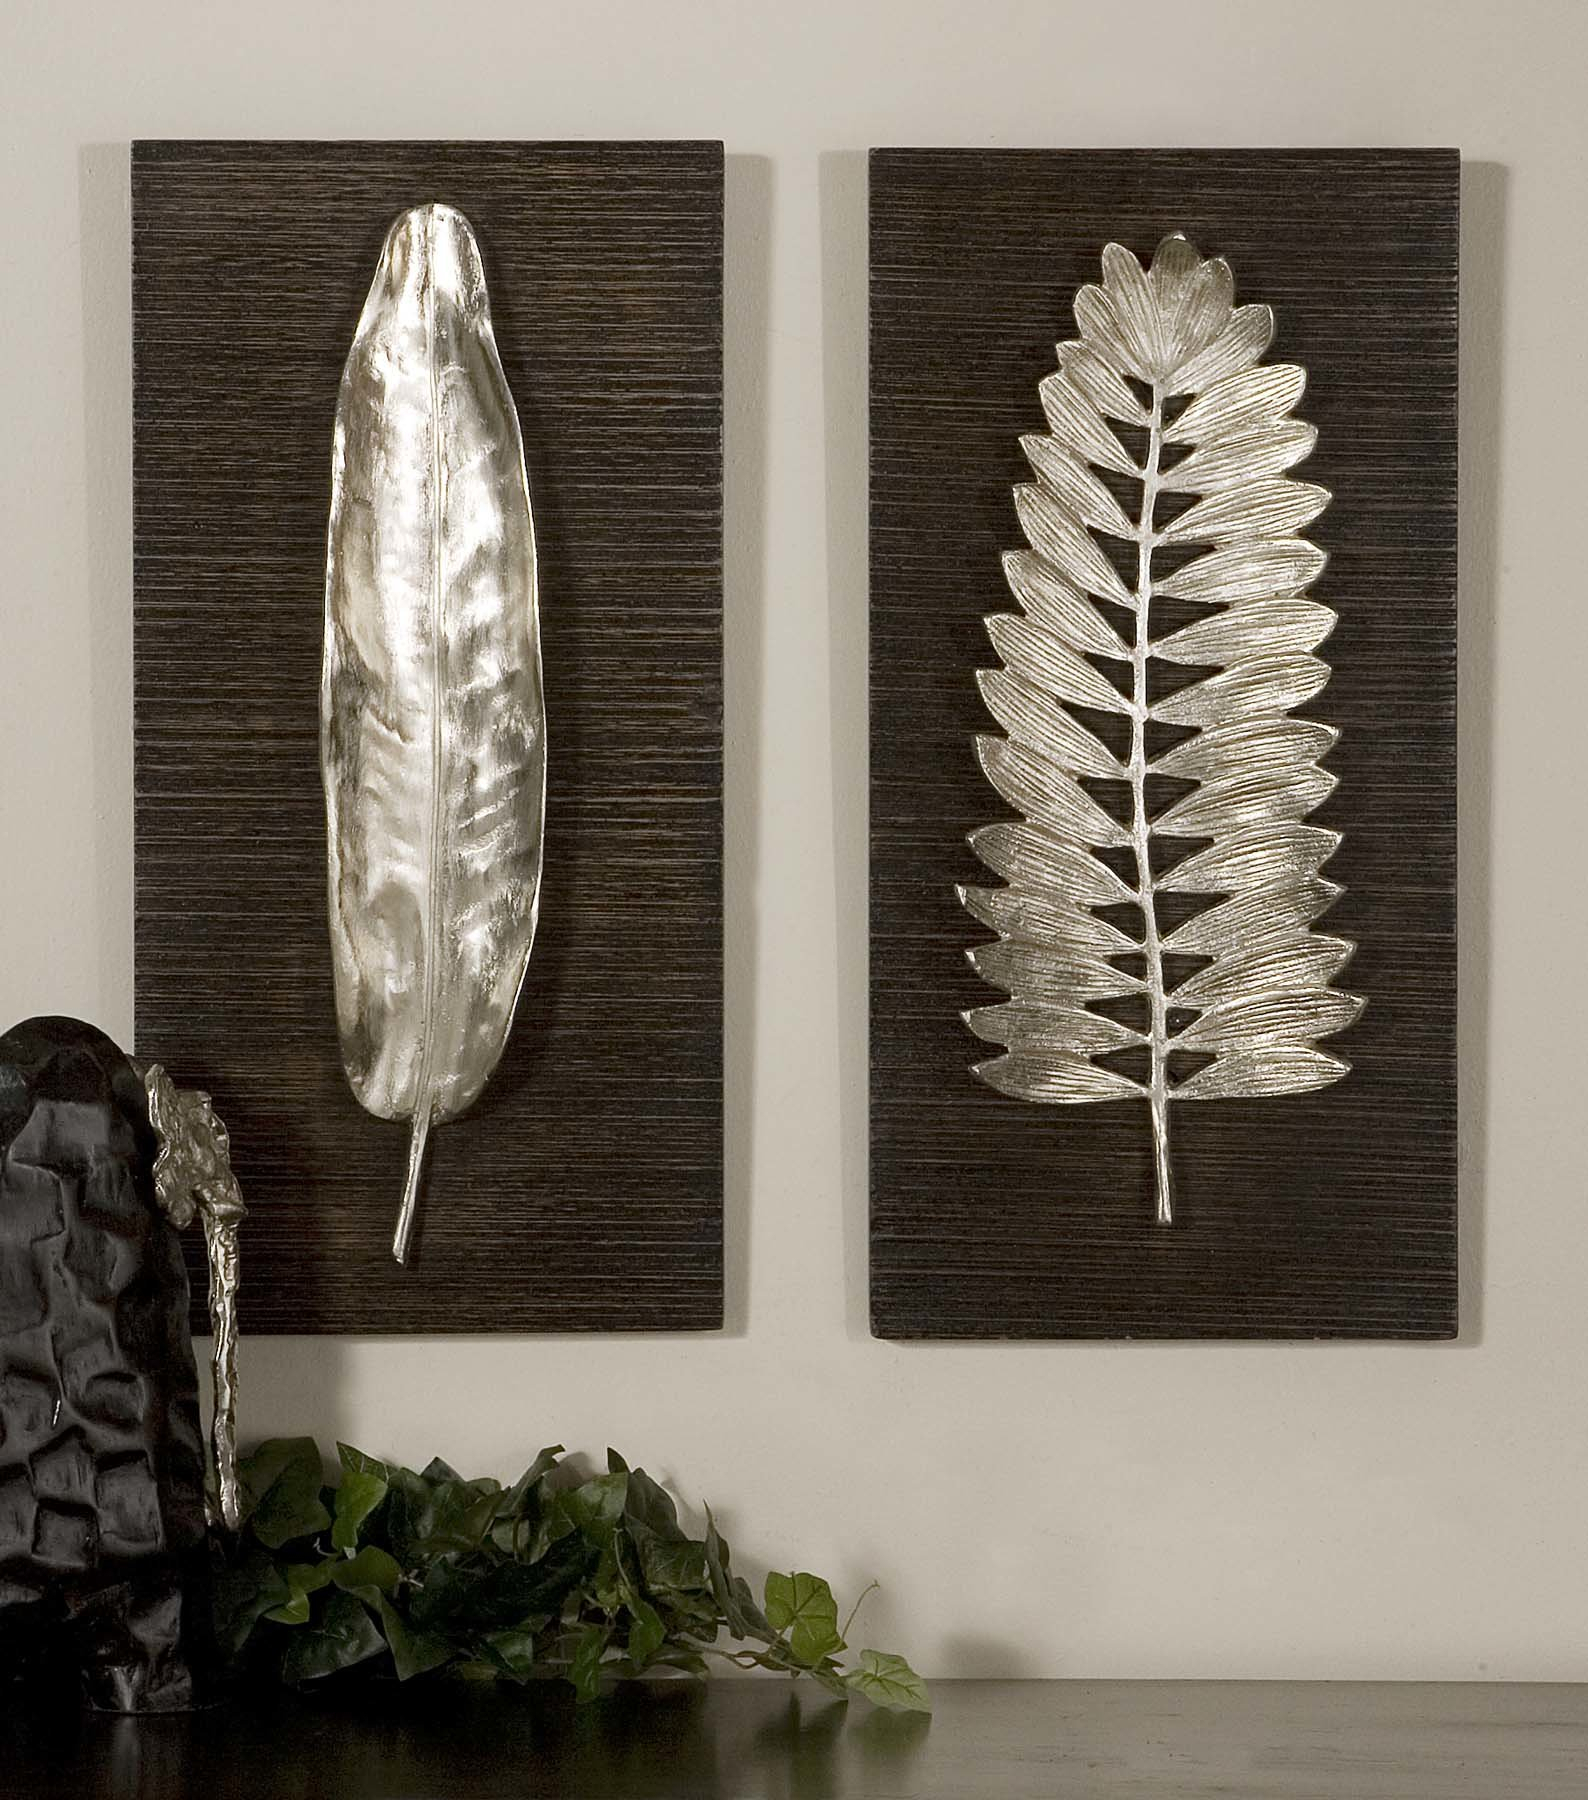 2 Piece Wall Decor Set | Wayfair for 2 Piece Starburst Wall Decor Sets (Image 4 of 30)